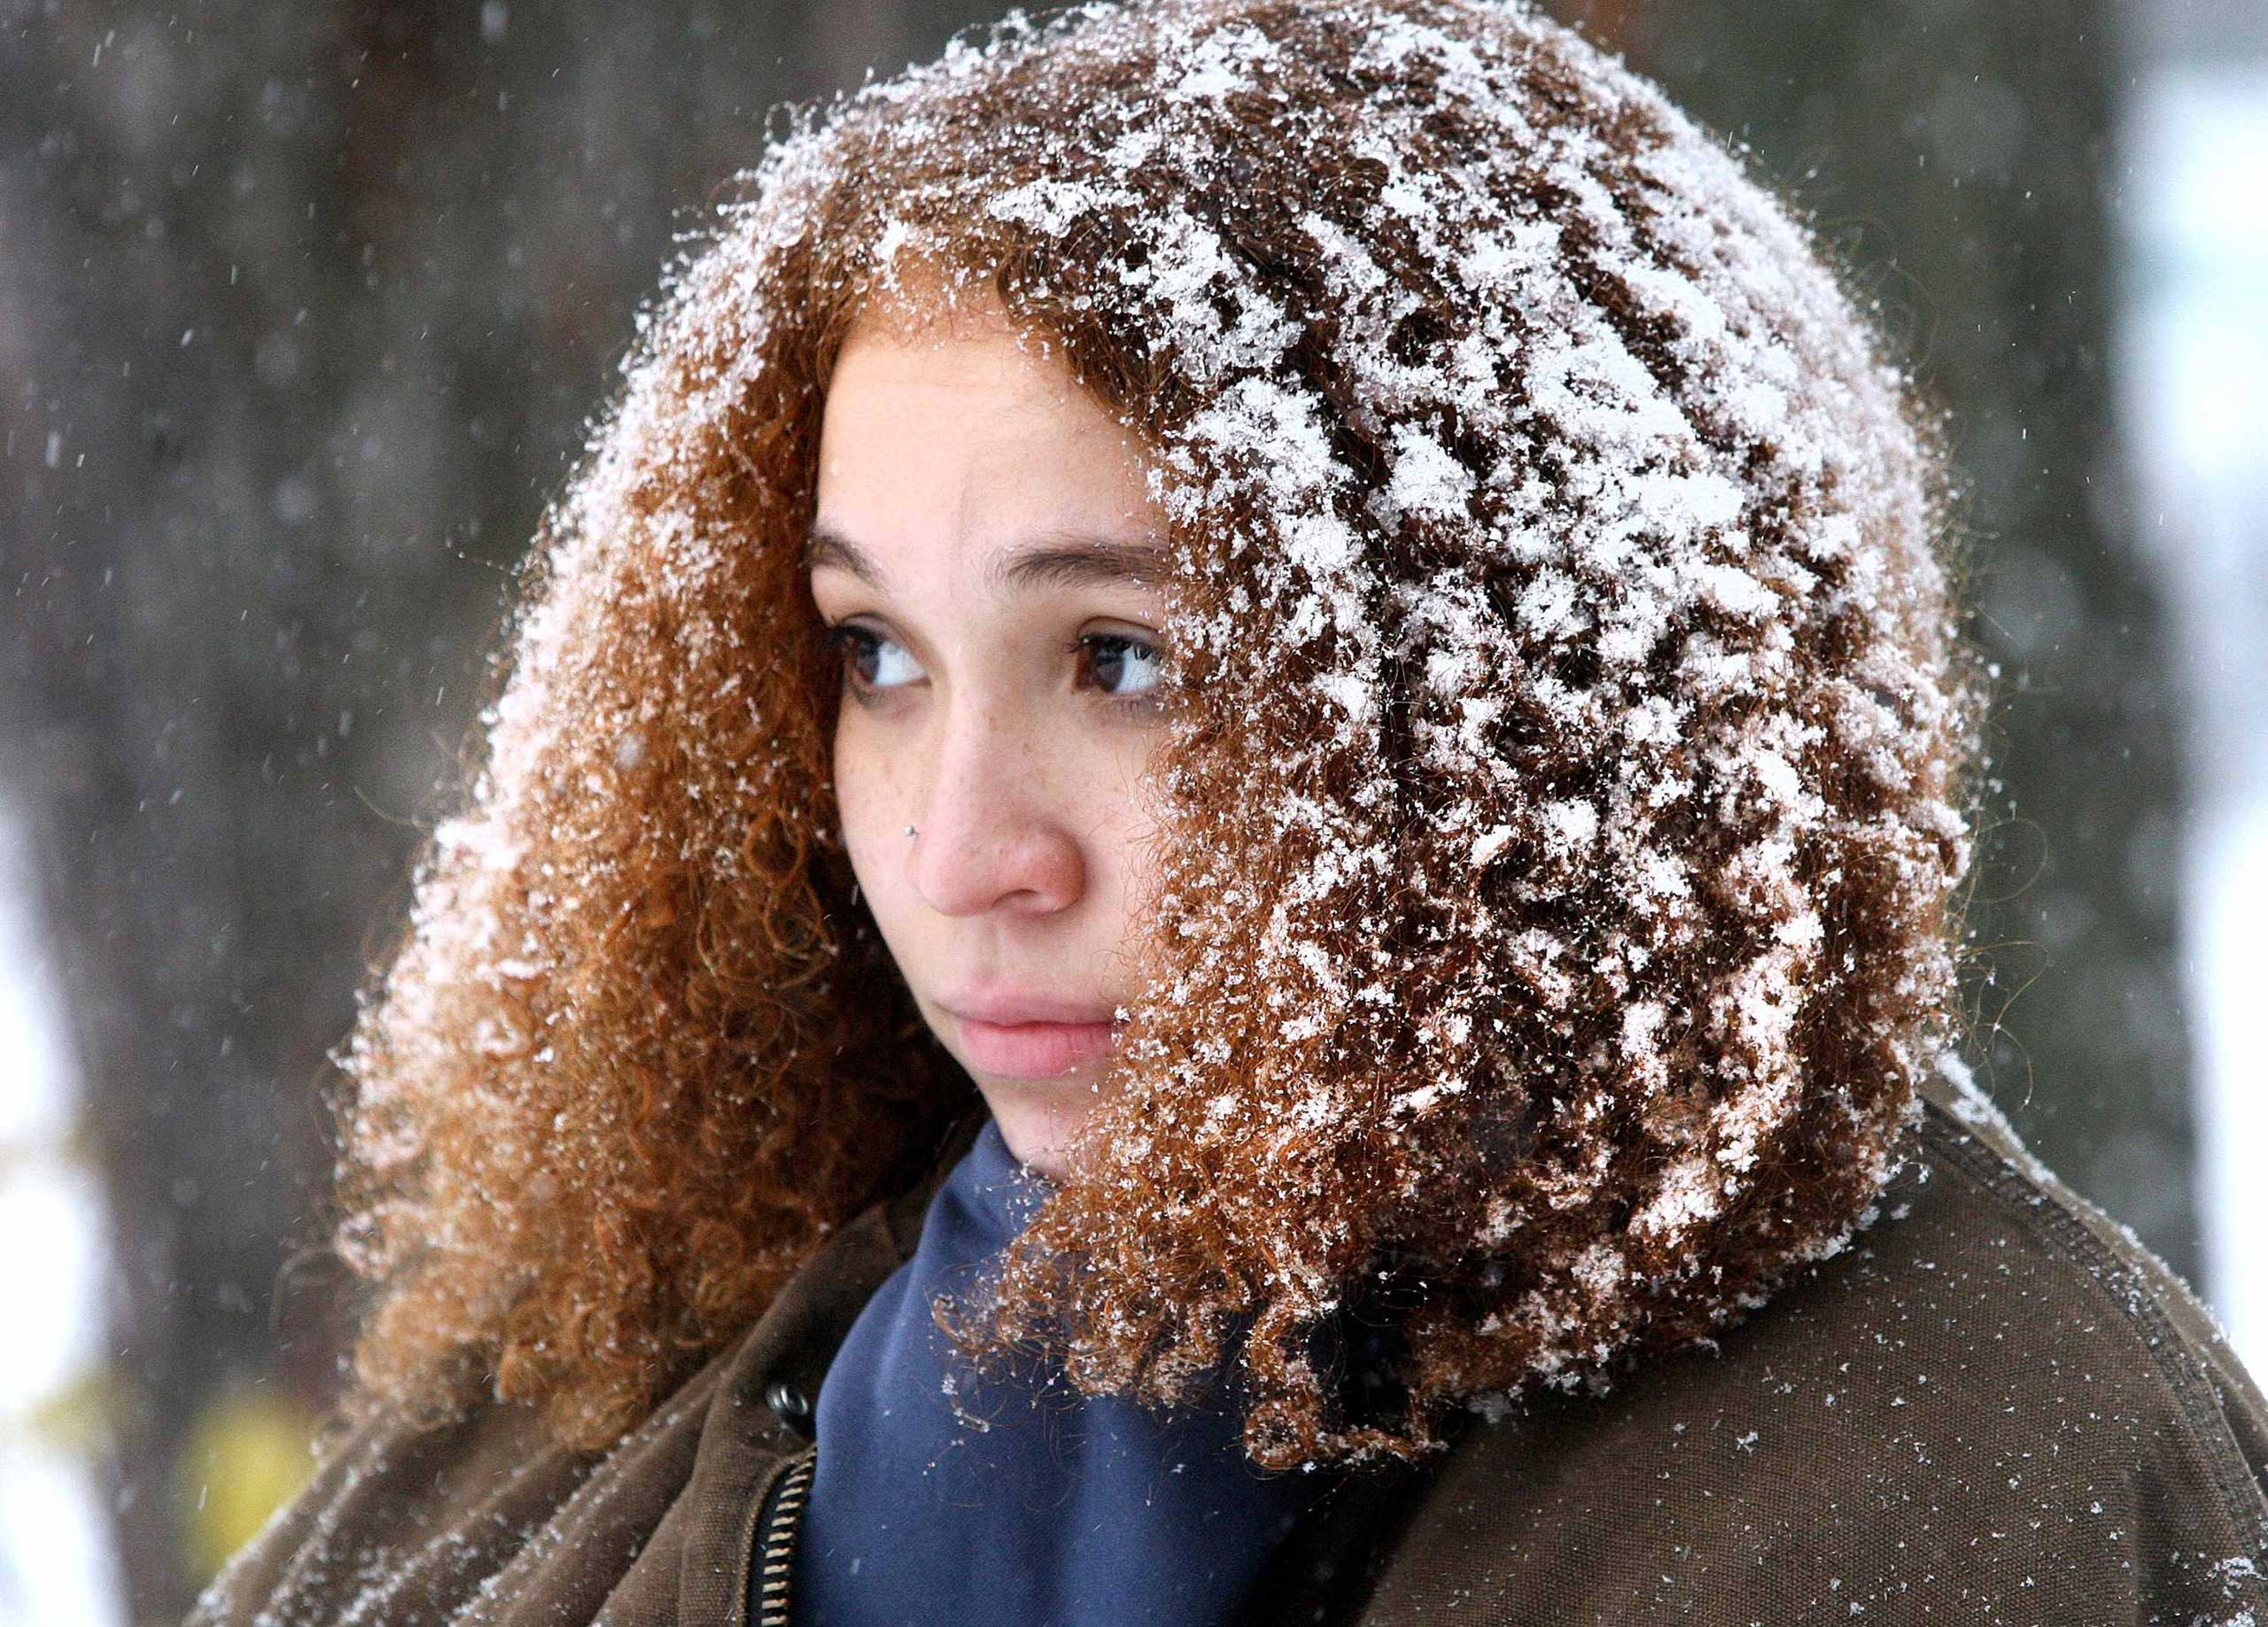 Perry Stephens waits to move her car after multiple collisions occurred at an intersection, following a snowfall in Duluth, Minn. on Nov. 10, 2014.